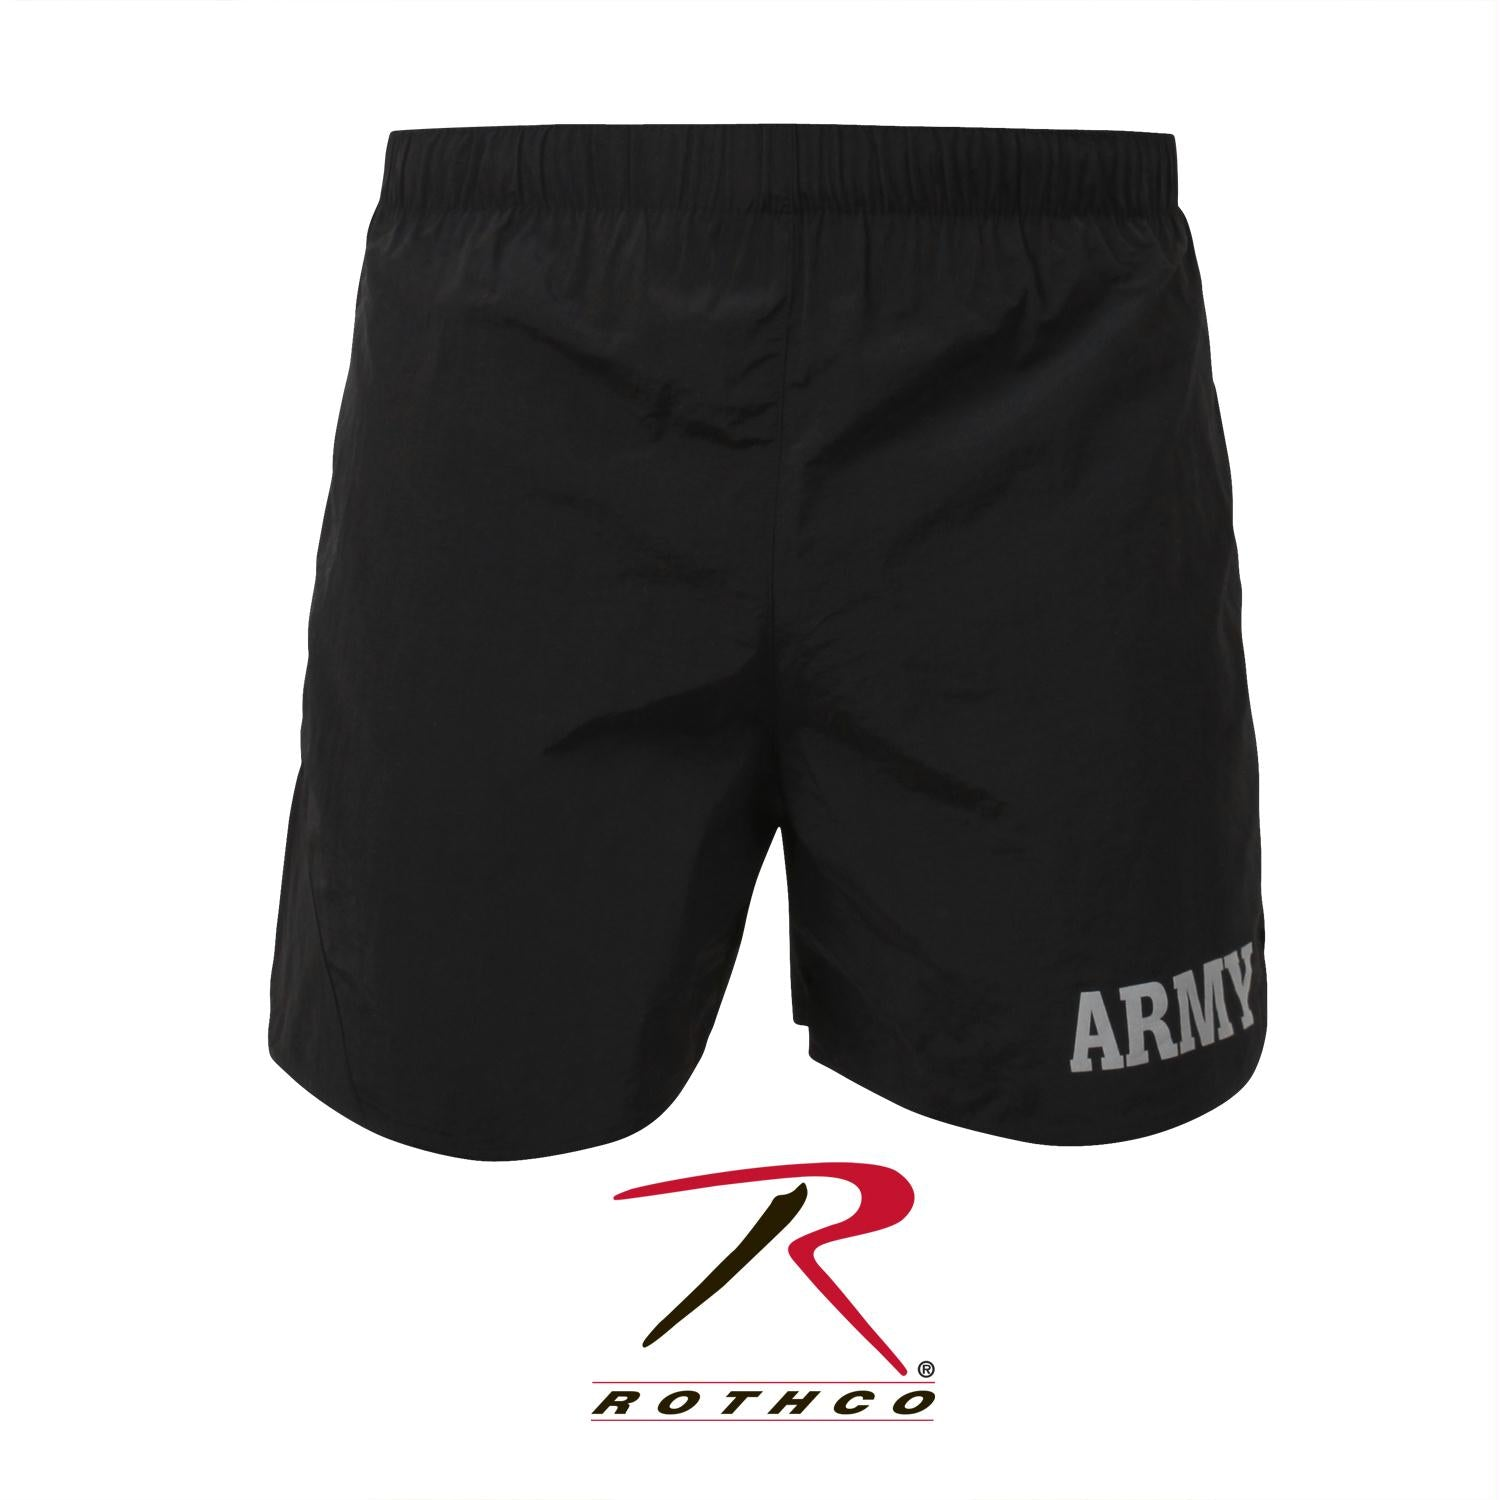 Rothco Physical Training  Shorts - Marines / M